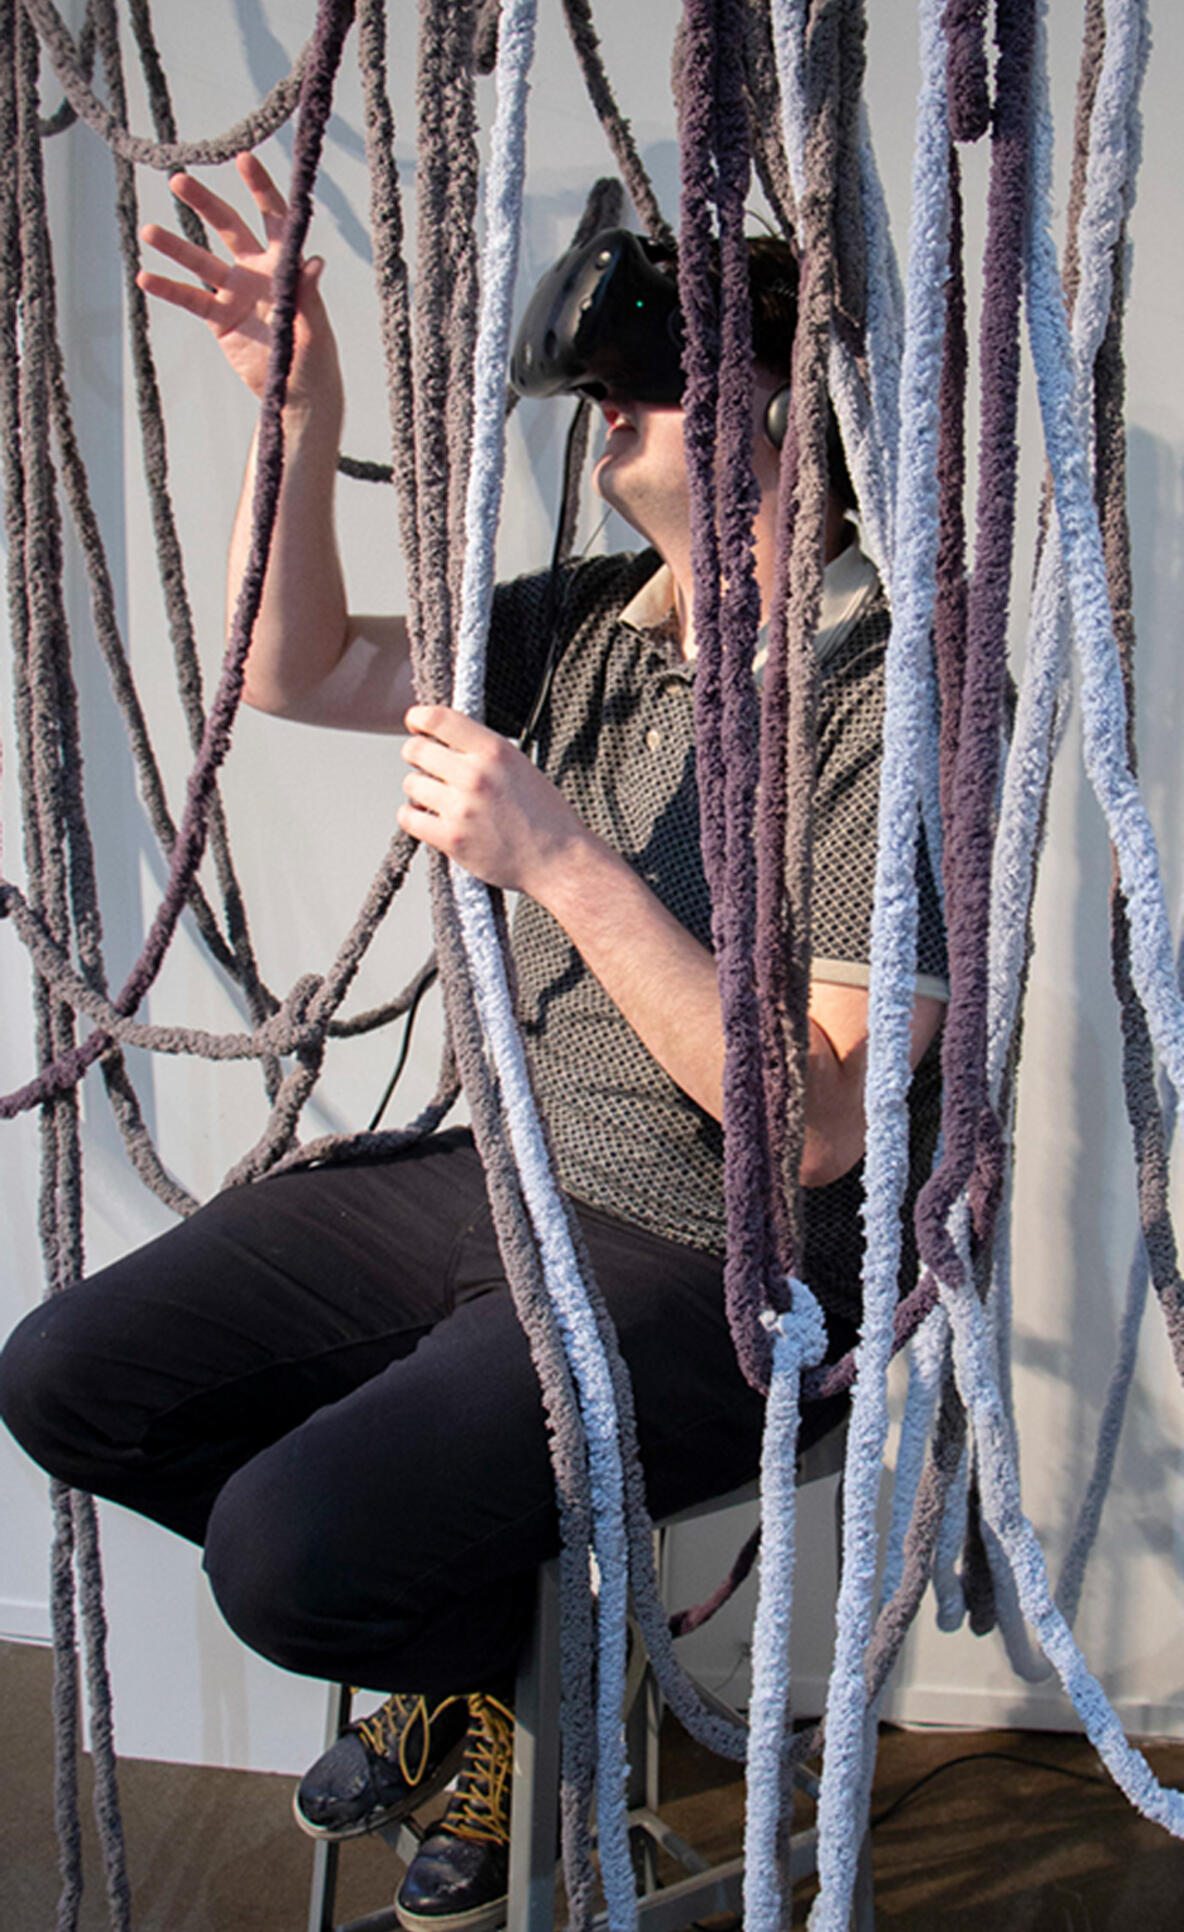 Someone is seated touching multiple ropes with a virtual reality headset on ; Shirin Ghoraishi